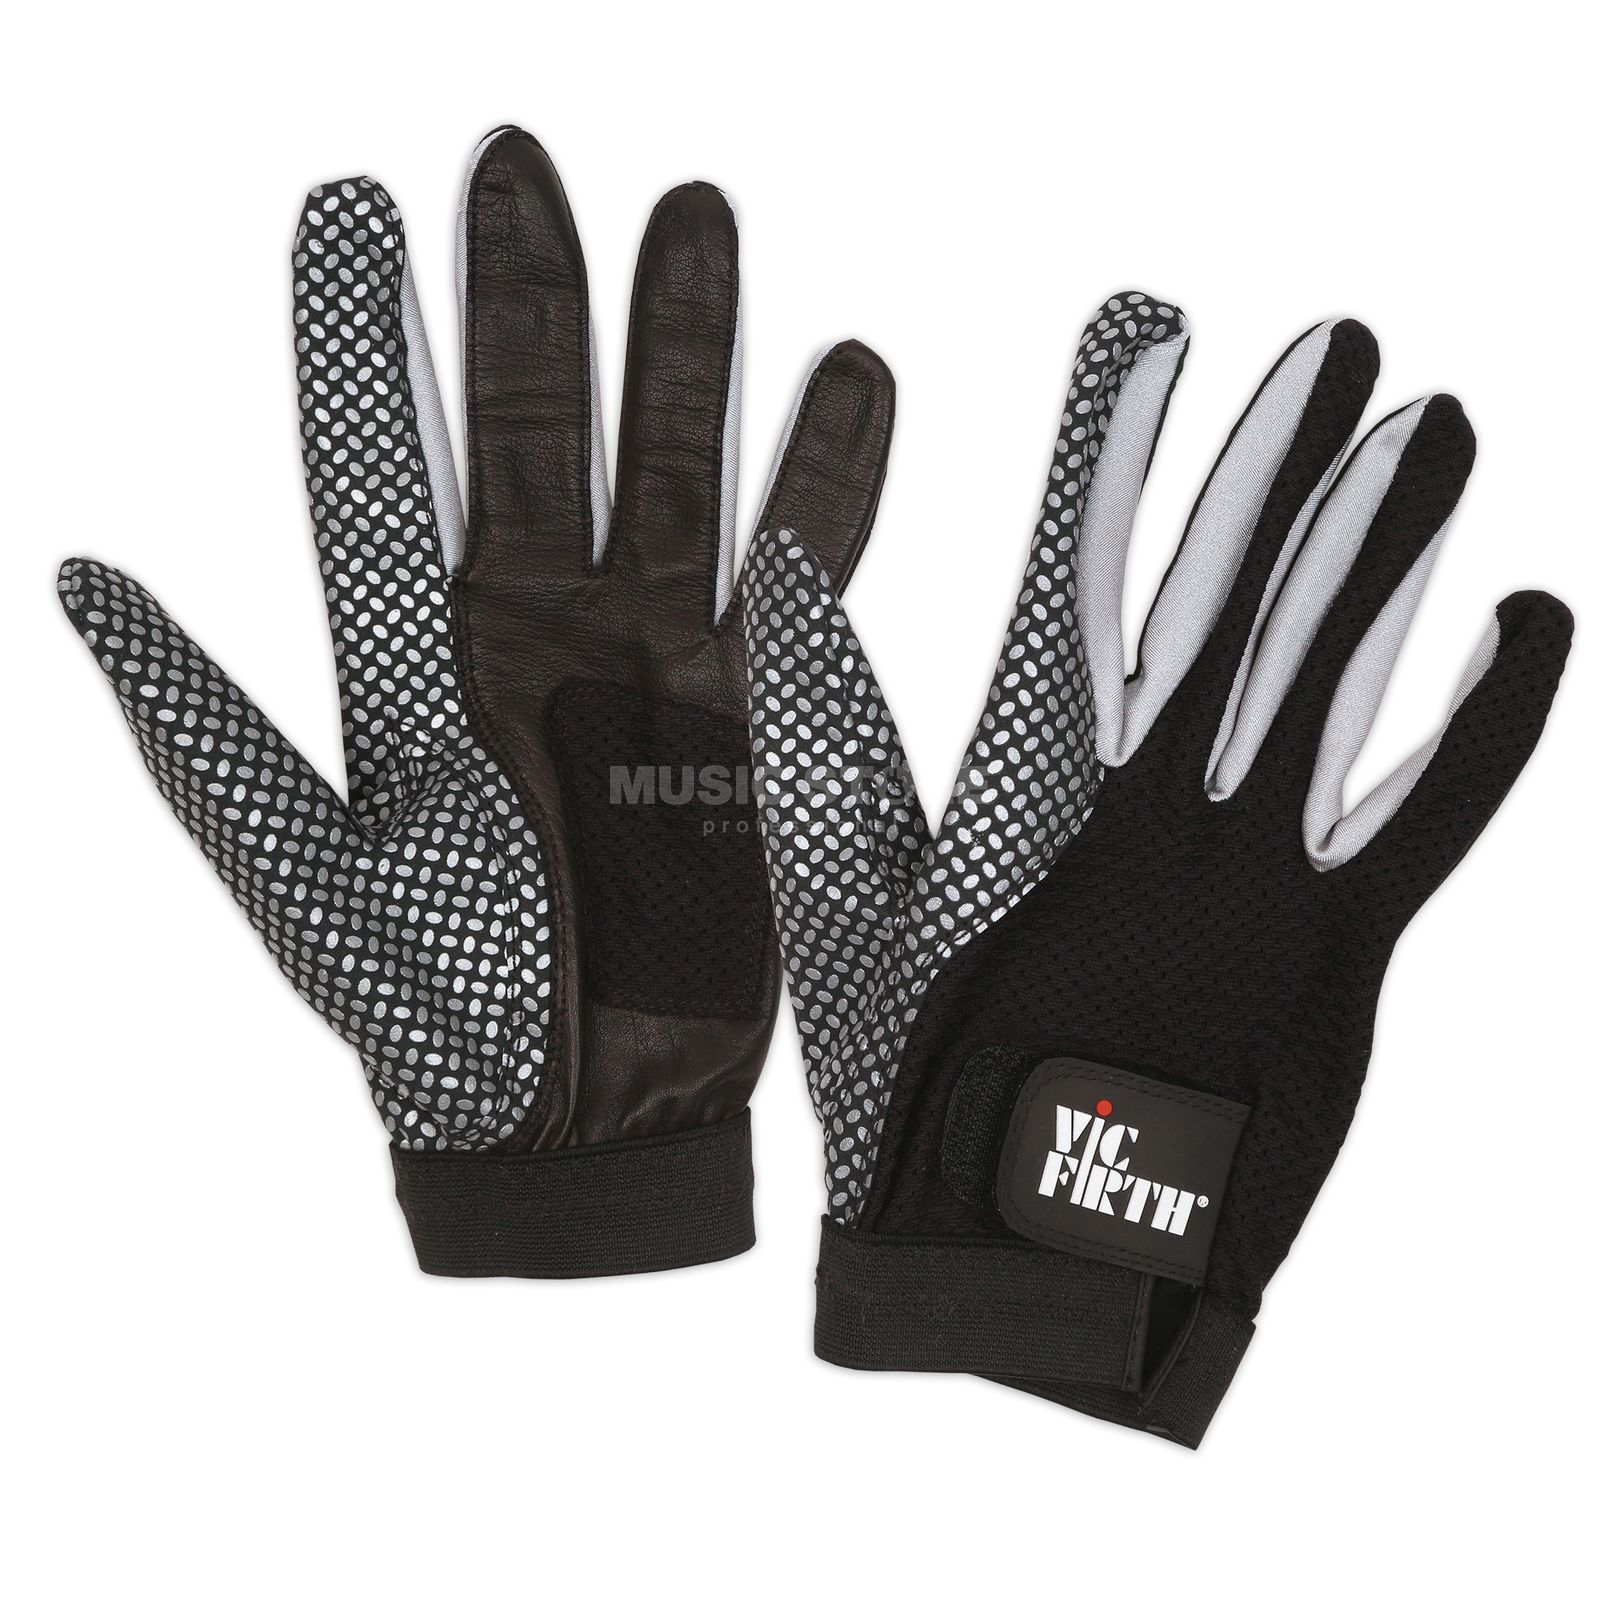 Vic-Firth Handschuhe Vic Gloves Size M Produktbild